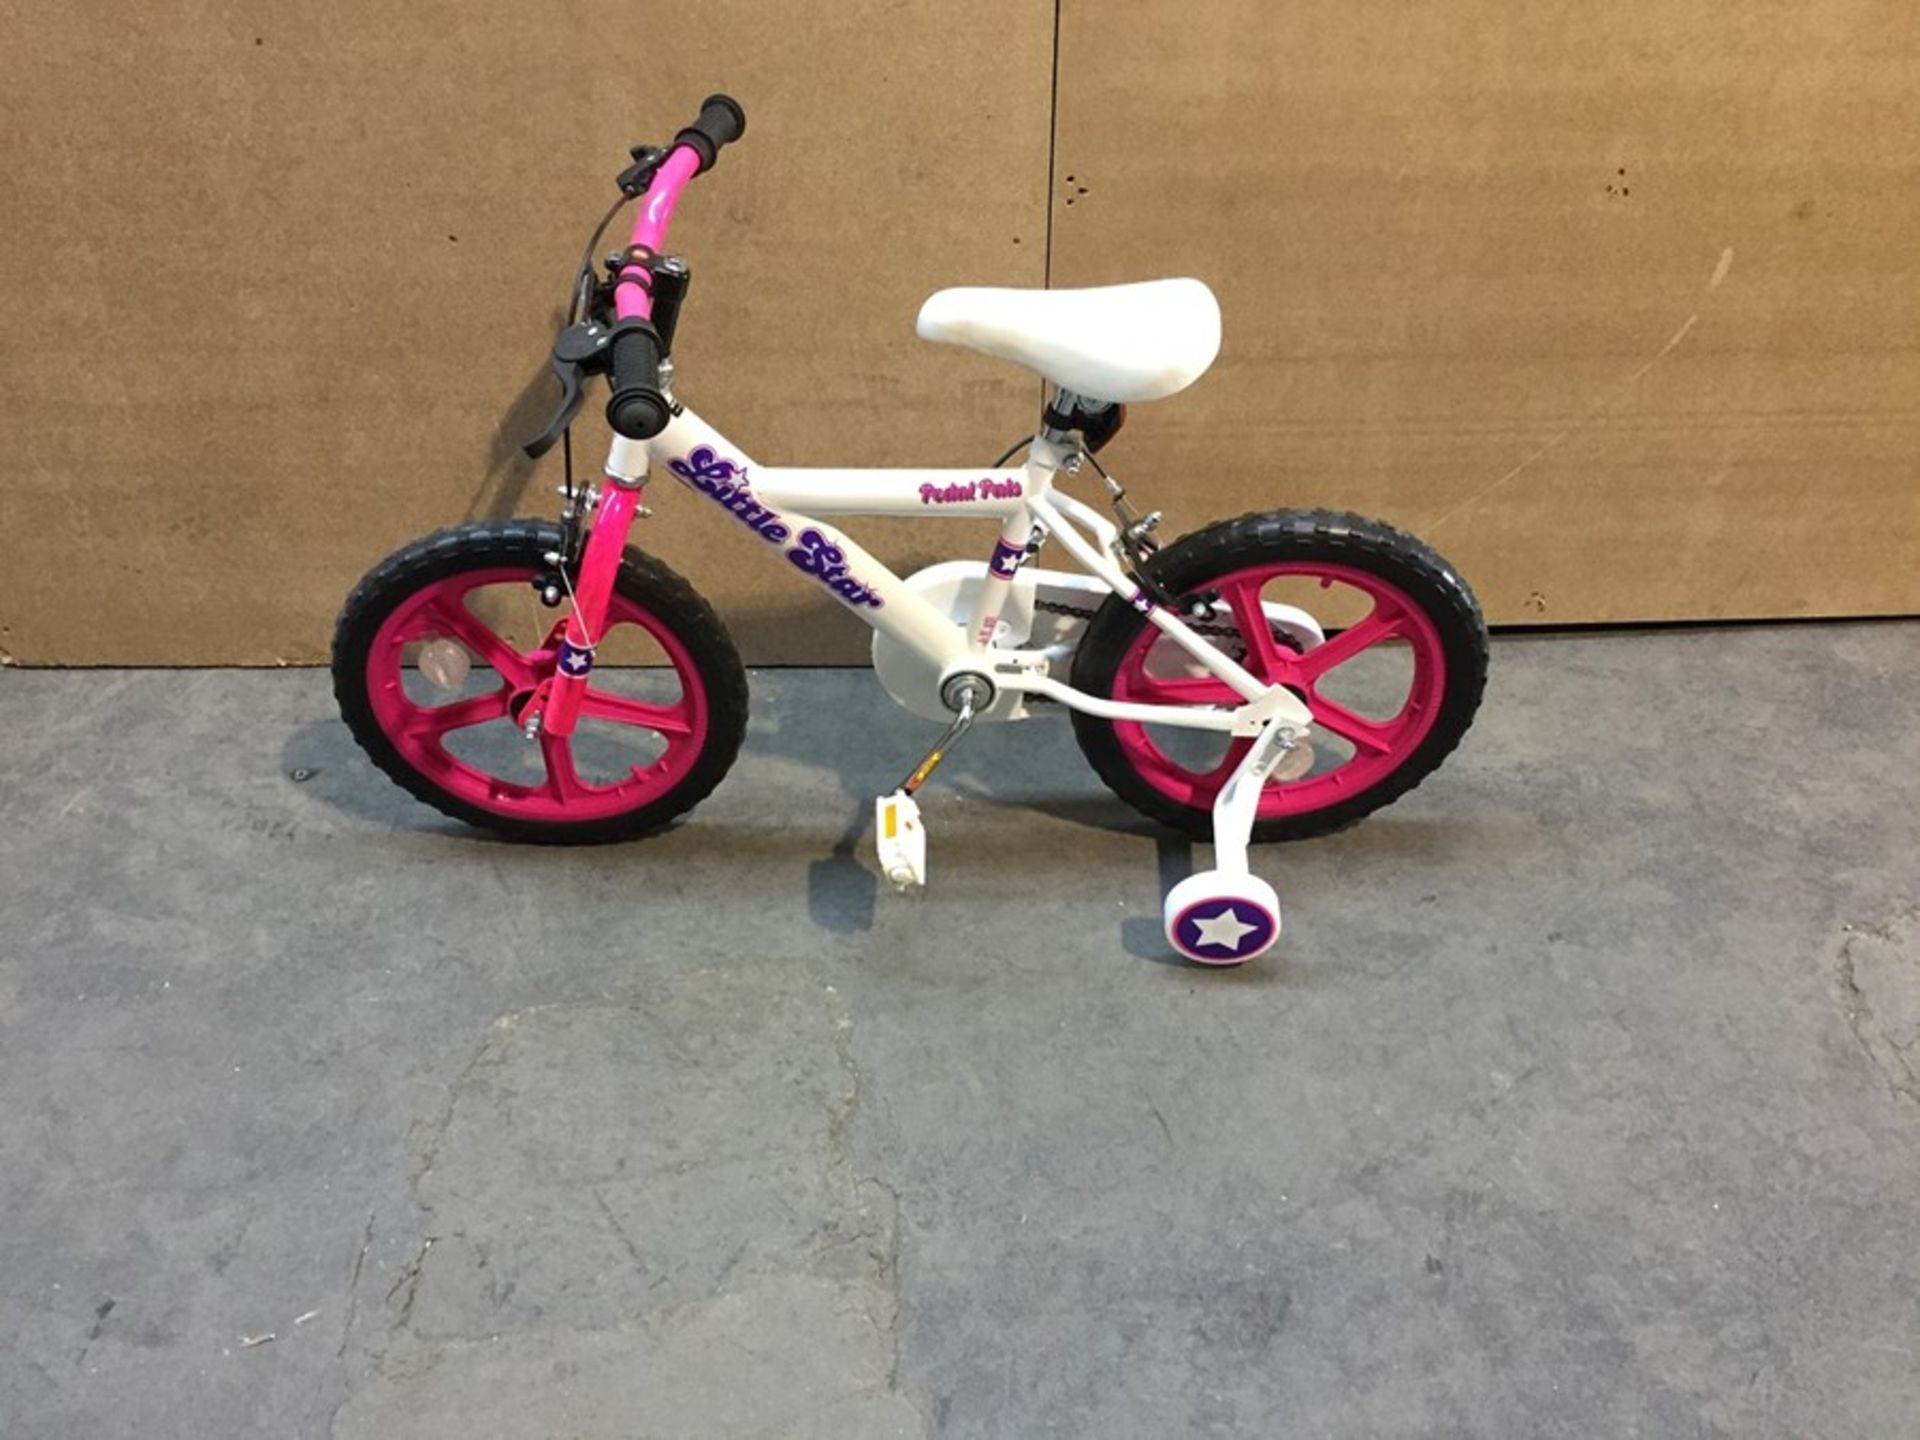 Lot 20 - 1 EX DISPLAY PEDAL PALS LITTLE STAR CHILDRENS BICYCLE RRP £69.99